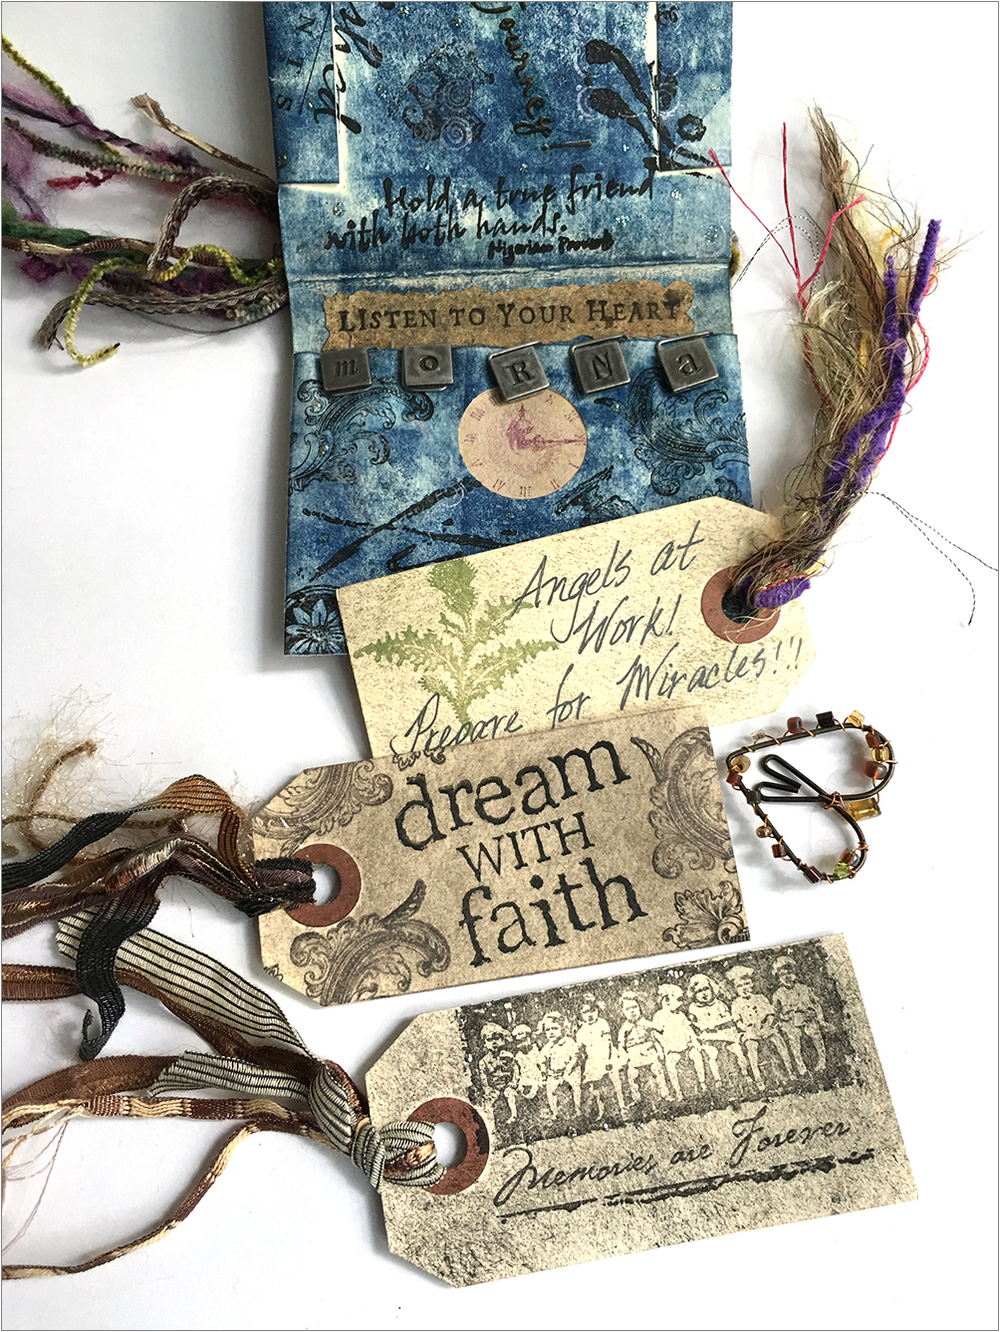 MAGICAL BOOK  FROM KIM CAPAN, WHO BLOGS AT ILOVESAMPLERS